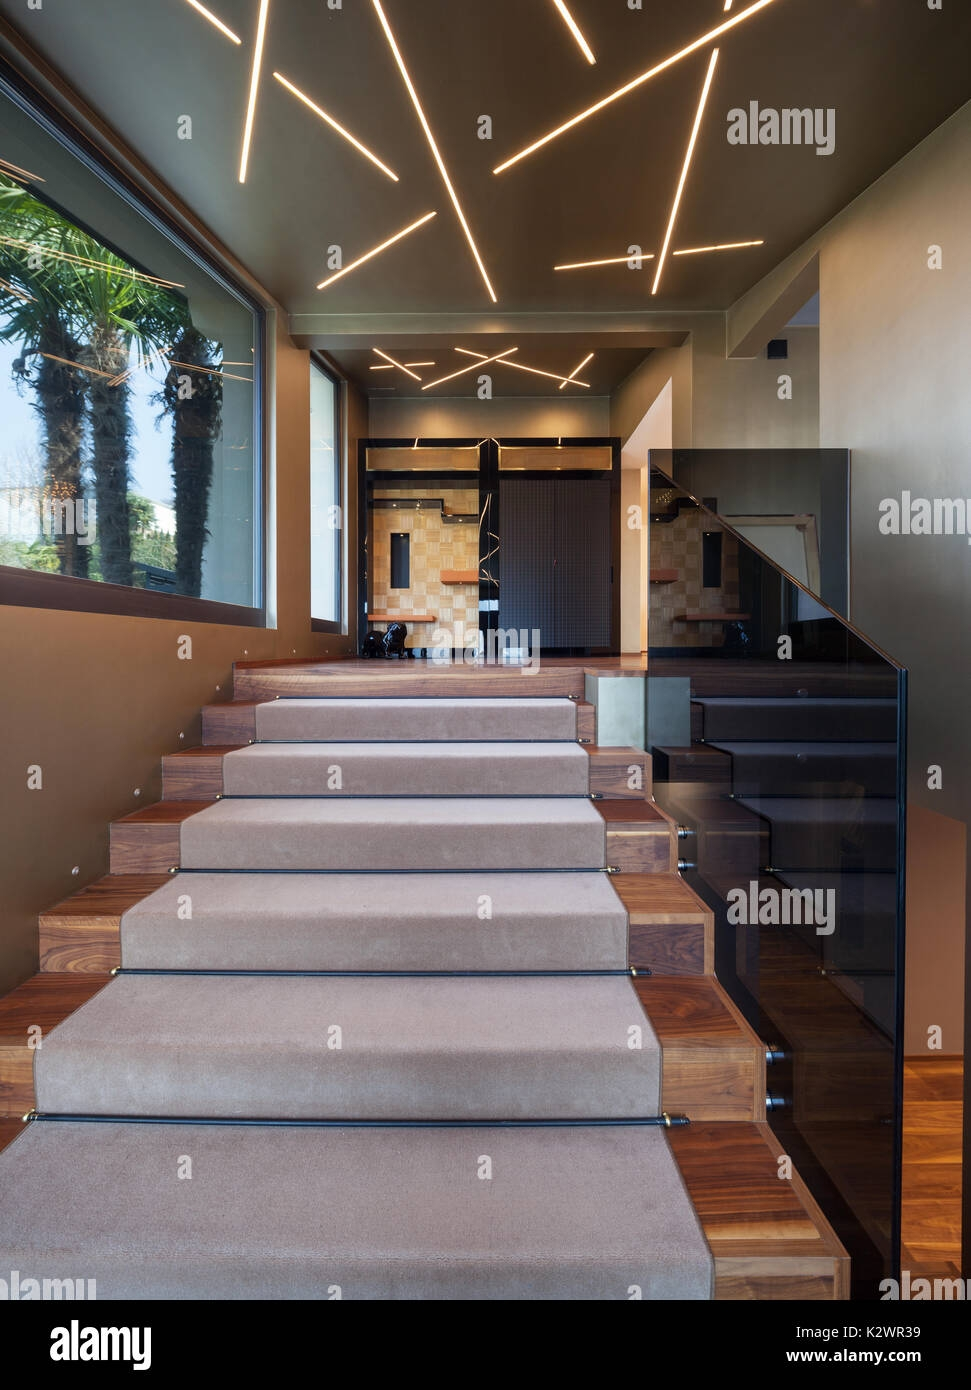 Modern Home Entrance Stairs With Glass Parapet Stock Photo Alamy   Home Entrance Stairs Design   Interior   Bedroom Home Kerala   Garden   Architecture   Fancy House